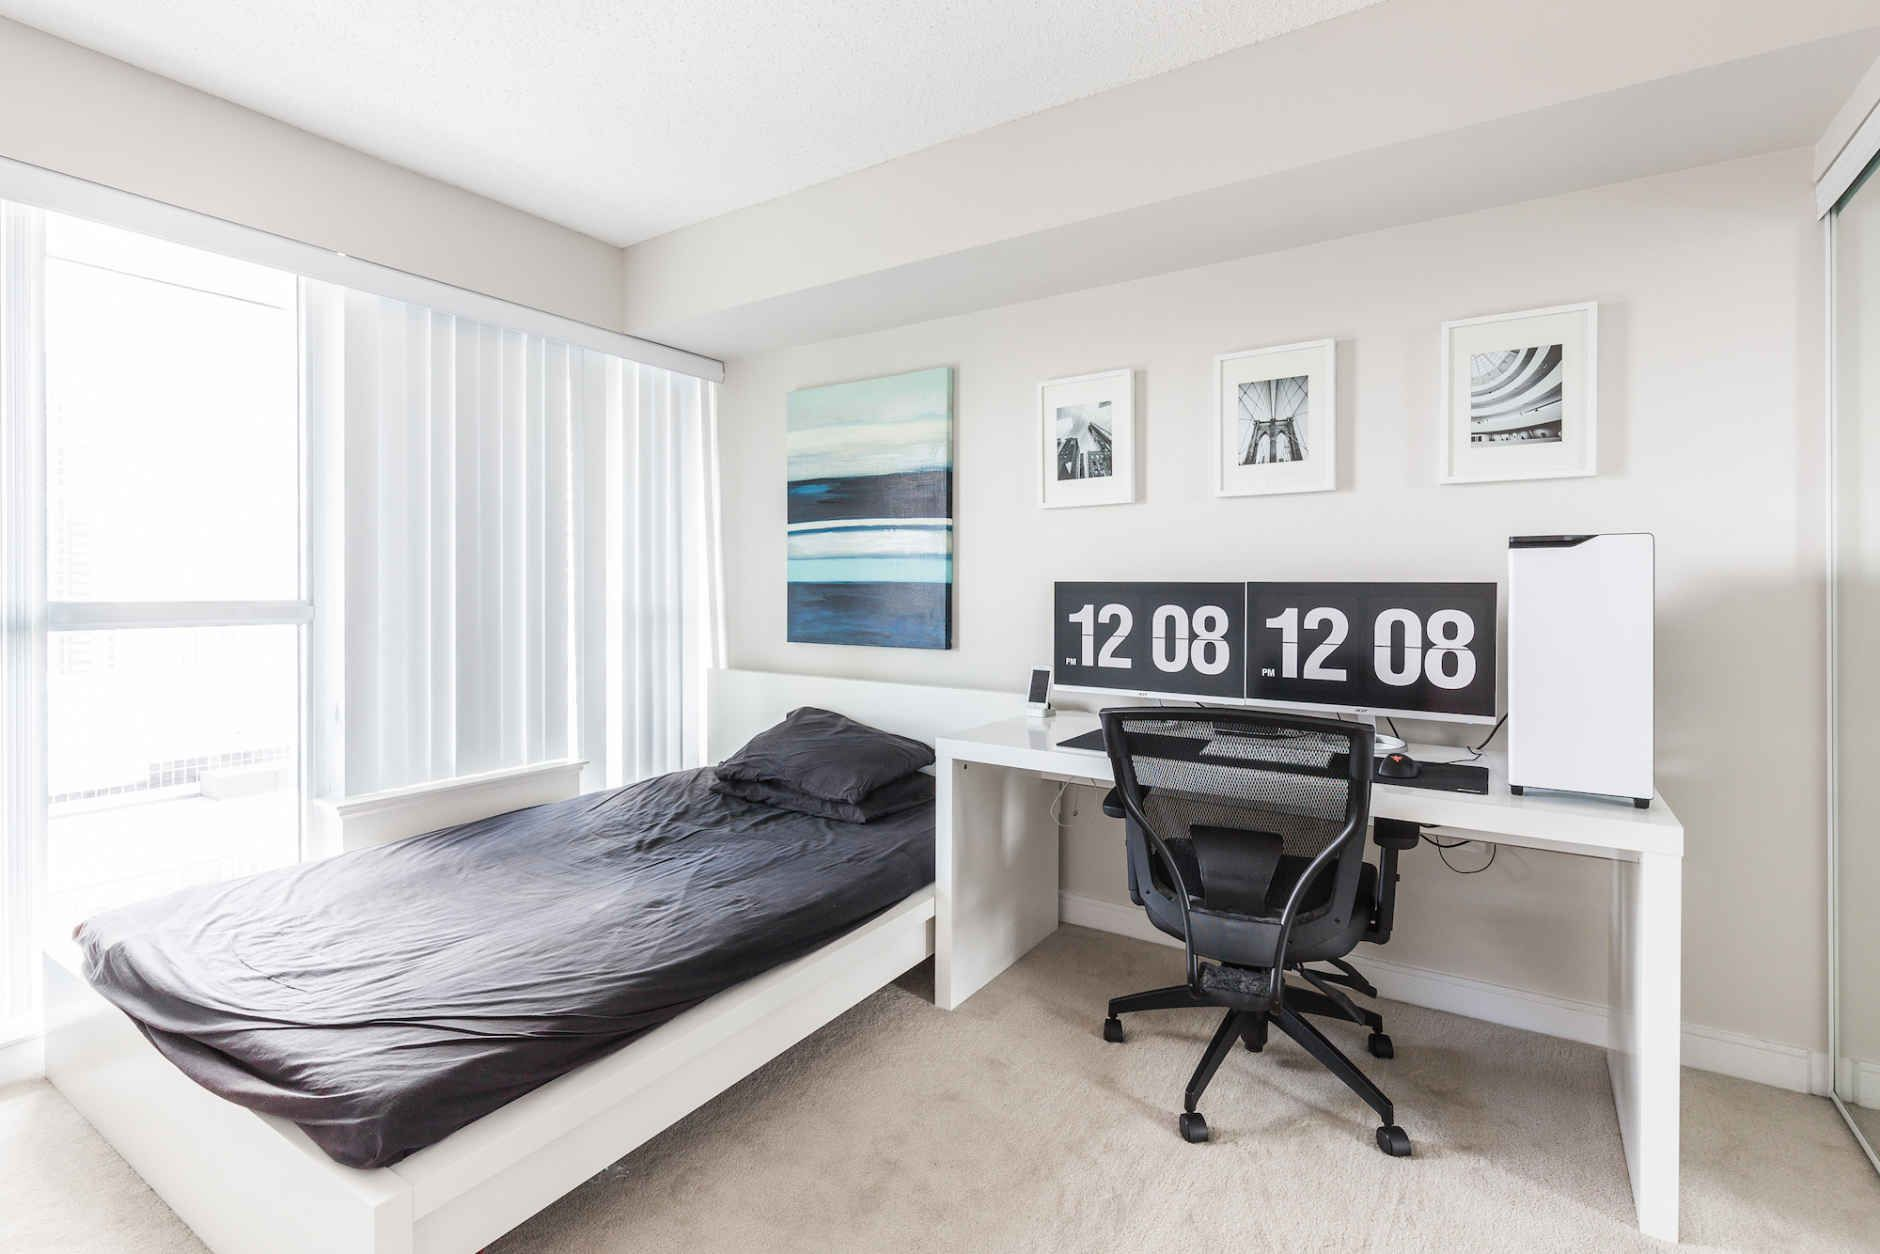 coole schlafzimmer pinterest room accessories full size of bedroomincredible ideas for cute. Black Bedroom Furniture Sets. Home Design Ideas